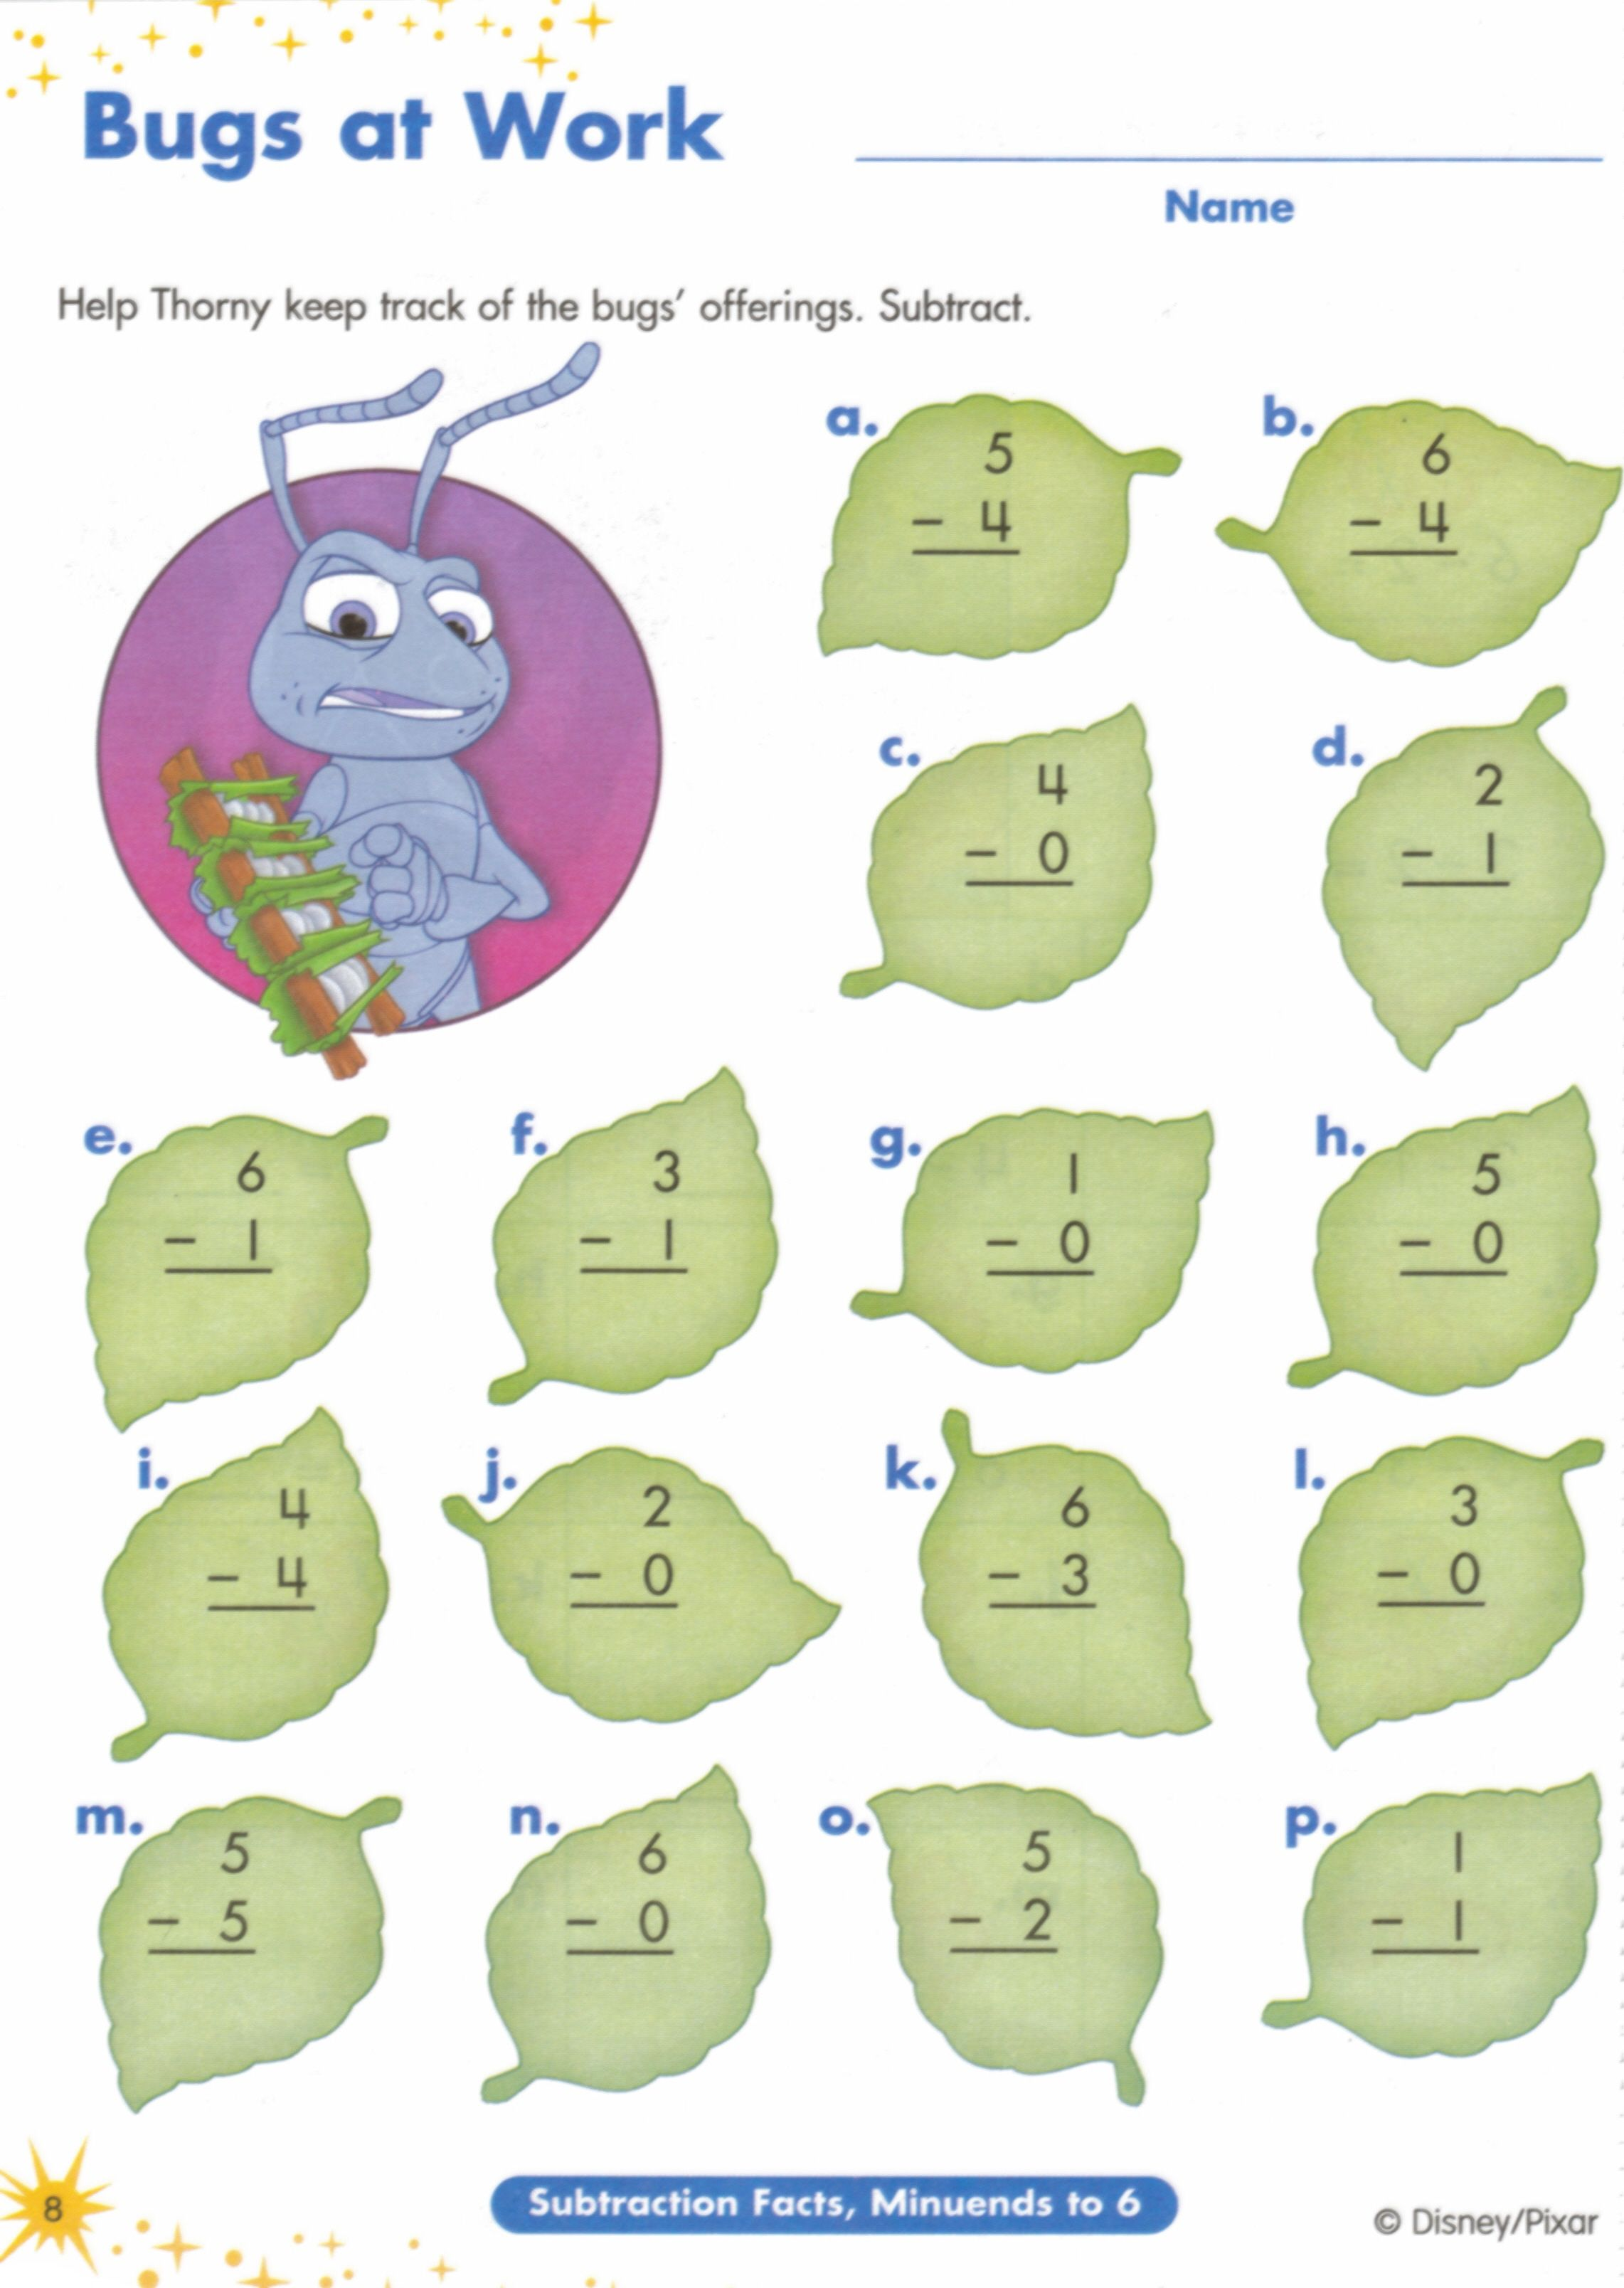 Weirdmailus  Mesmerizing  Images About Worksheets On Pinterest  Fun Facts For Kids  With Excellent  Images About Worksheets On Pinterest  Fun Facts For Kids Earth Day Worksheets And Jungles With Appealing Adding Worksheets Kindergarten Also Multiplying A Whole Number By A Fraction Worksheet In Addition Worksheet On Probability And Excel Lock Worksheet As Well As Safety Worksheets For Kids Additionally Geometry Worksheets Th Grade From Pinterestcom With Weirdmailus  Excellent  Images About Worksheets On Pinterest  Fun Facts For Kids  With Appealing  Images About Worksheets On Pinterest  Fun Facts For Kids Earth Day Worksheets And Jungles And Mesmerizing Adding Worksheets Kindergarten Also Multiplying A Whole Number By A Fraction Worksheet In Addition Worksheet On Probability From Pinterestcom